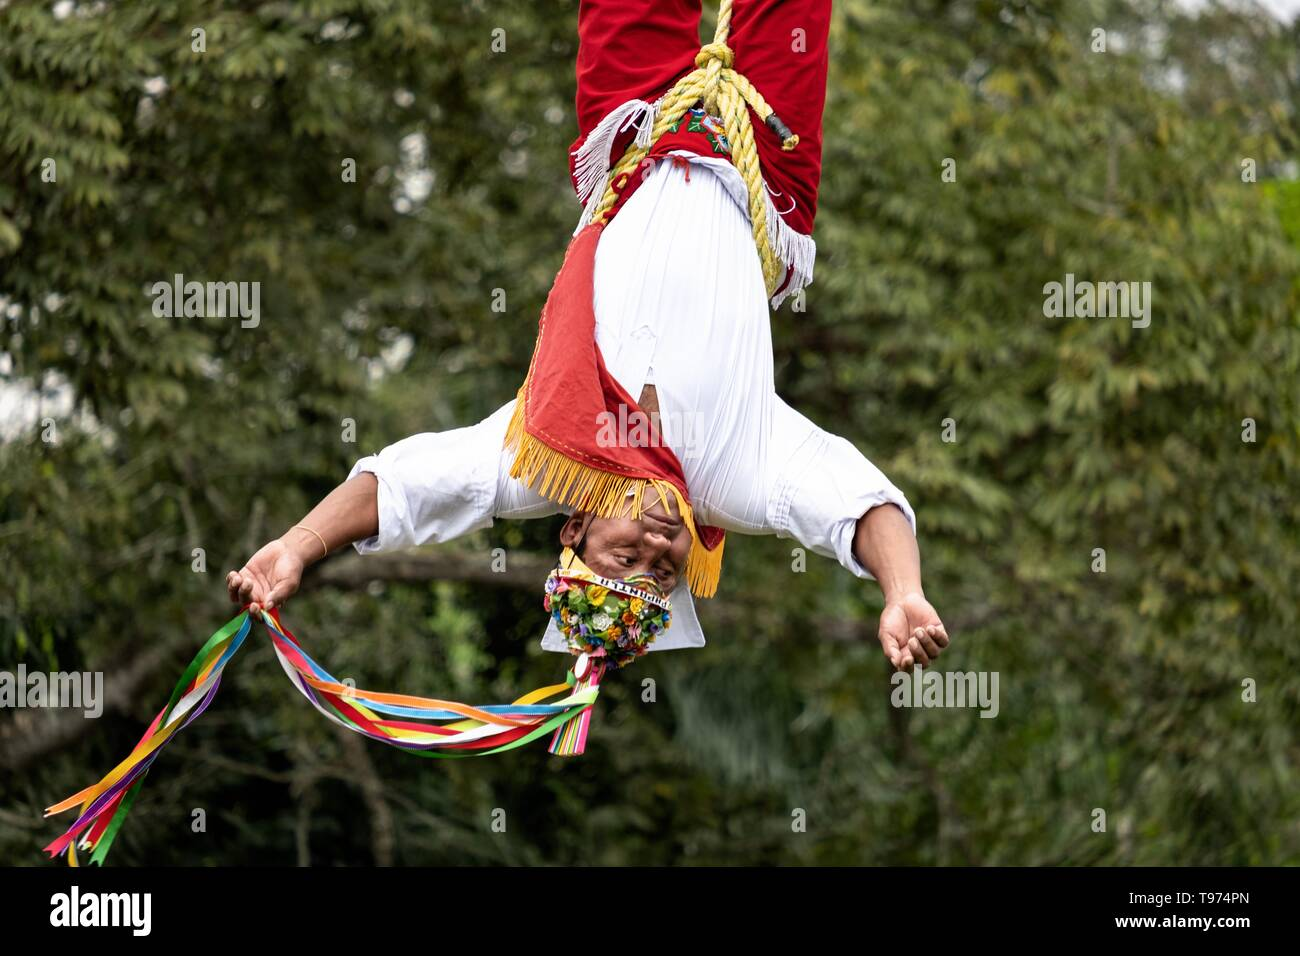 A Volador performs the sacred ceremonial Dance of the Voladores in the Parque Takilhsukut at the pre-Columbian archeological complex of El Tajin in Tajin, Veracruz, Mexico. The Danza de los Voladores is a indigenous Totonac ceremony involving five participants who climb a thirty-meter pole. Four of these tie ropes around their waists and wind the other end around the top of the pole in order to descend to the ground. The fifth participant stays at the top of the pole, playing a flute and a small drum. The ceremony has been inscribed as a Masterpiece of the Oral and Intangible Heritage of Human - Stock Image